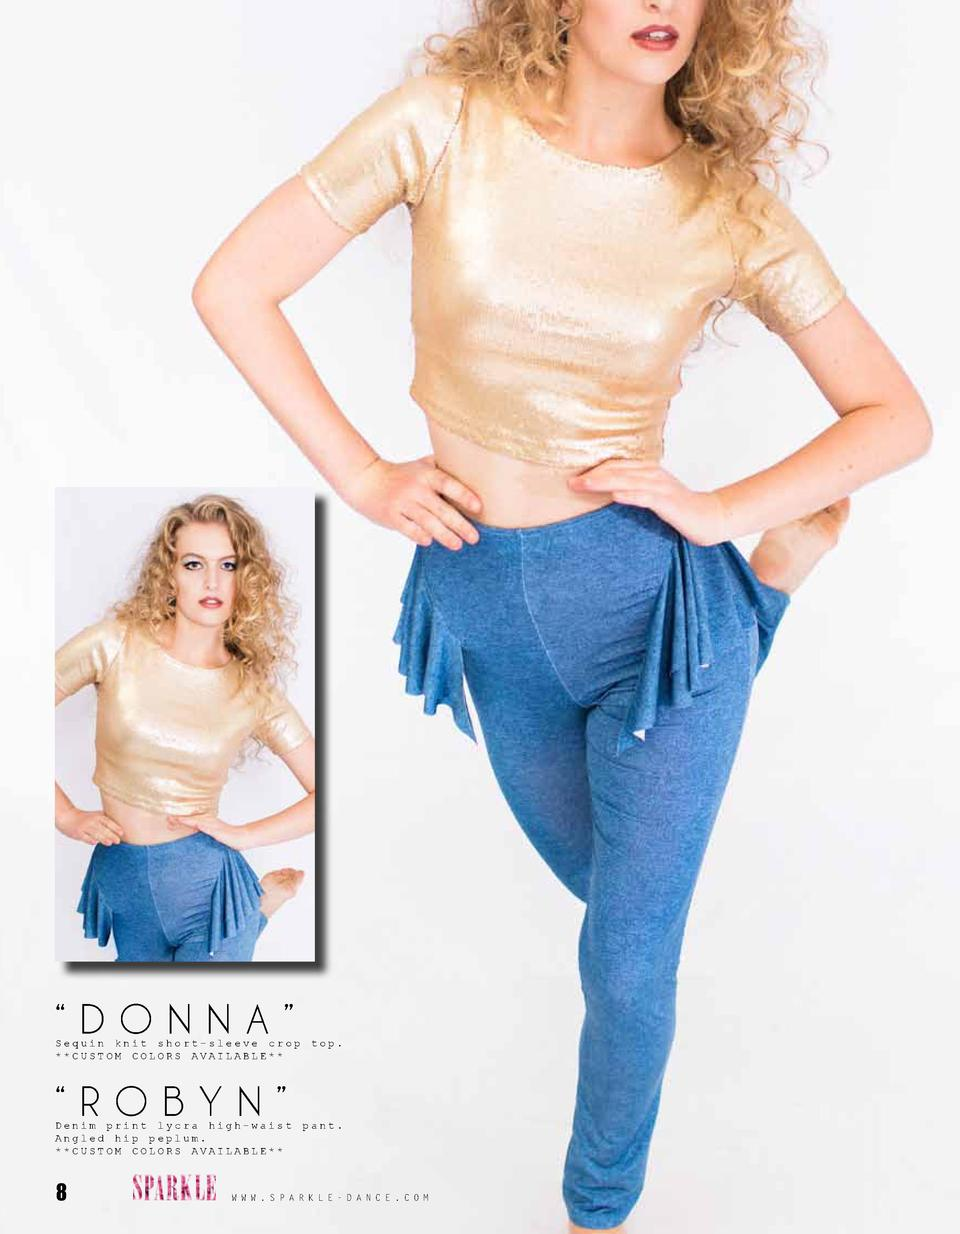 DONNA     Sequin knit short-sleeve crop   CUSTOM COLORS AVAILABLE       ROBYN     Denim print lycra high-waist Angled h...